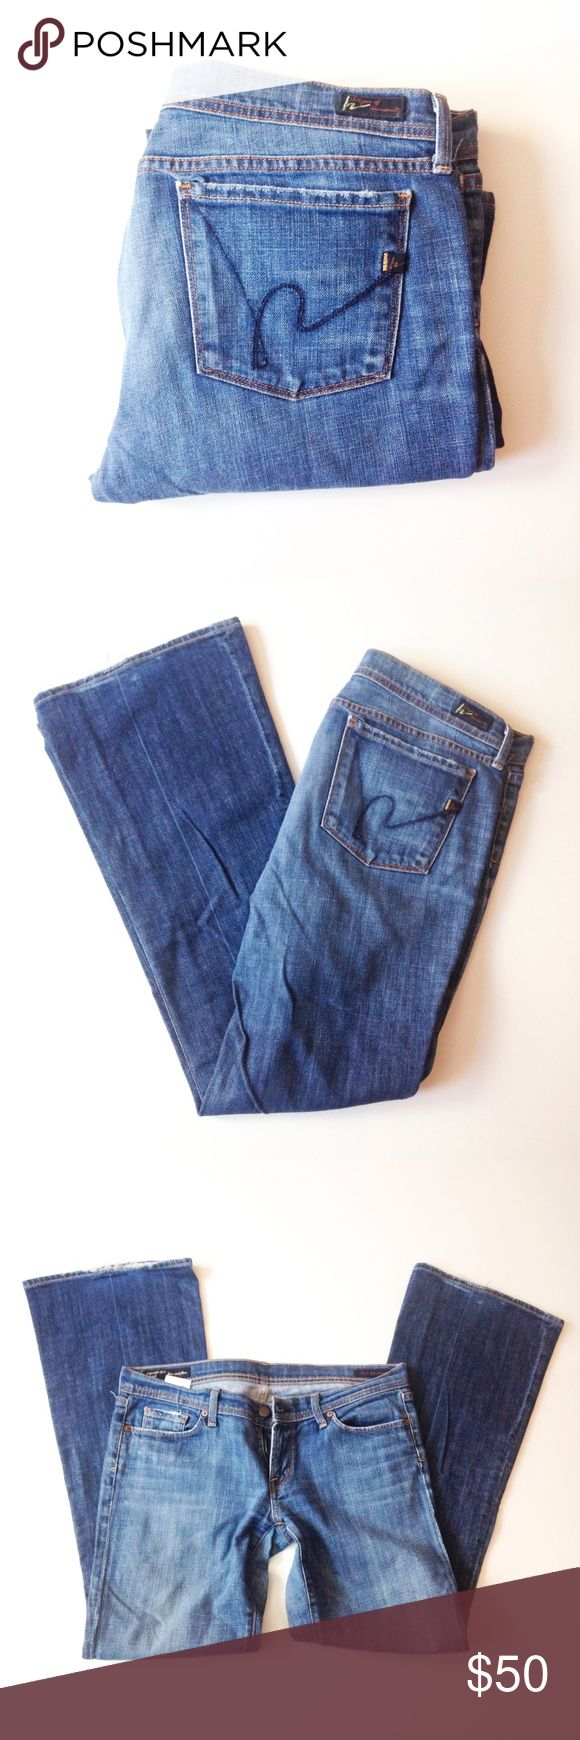 🎈1 HR FINAL SALE🎈CITIZENS OF HUMANITY  flare Soft, faltering, classic. Inseam appx 33, rise appx 8, waist laying down appx 18. The bottom of the jeans is a little bit distressed. Thank you for visiting my closet. Please feel free to ask any questions. I am here for you. :) 99% of the time I ship the next day. :) Citizens of Humanity Jeans Flare & Wide Leg